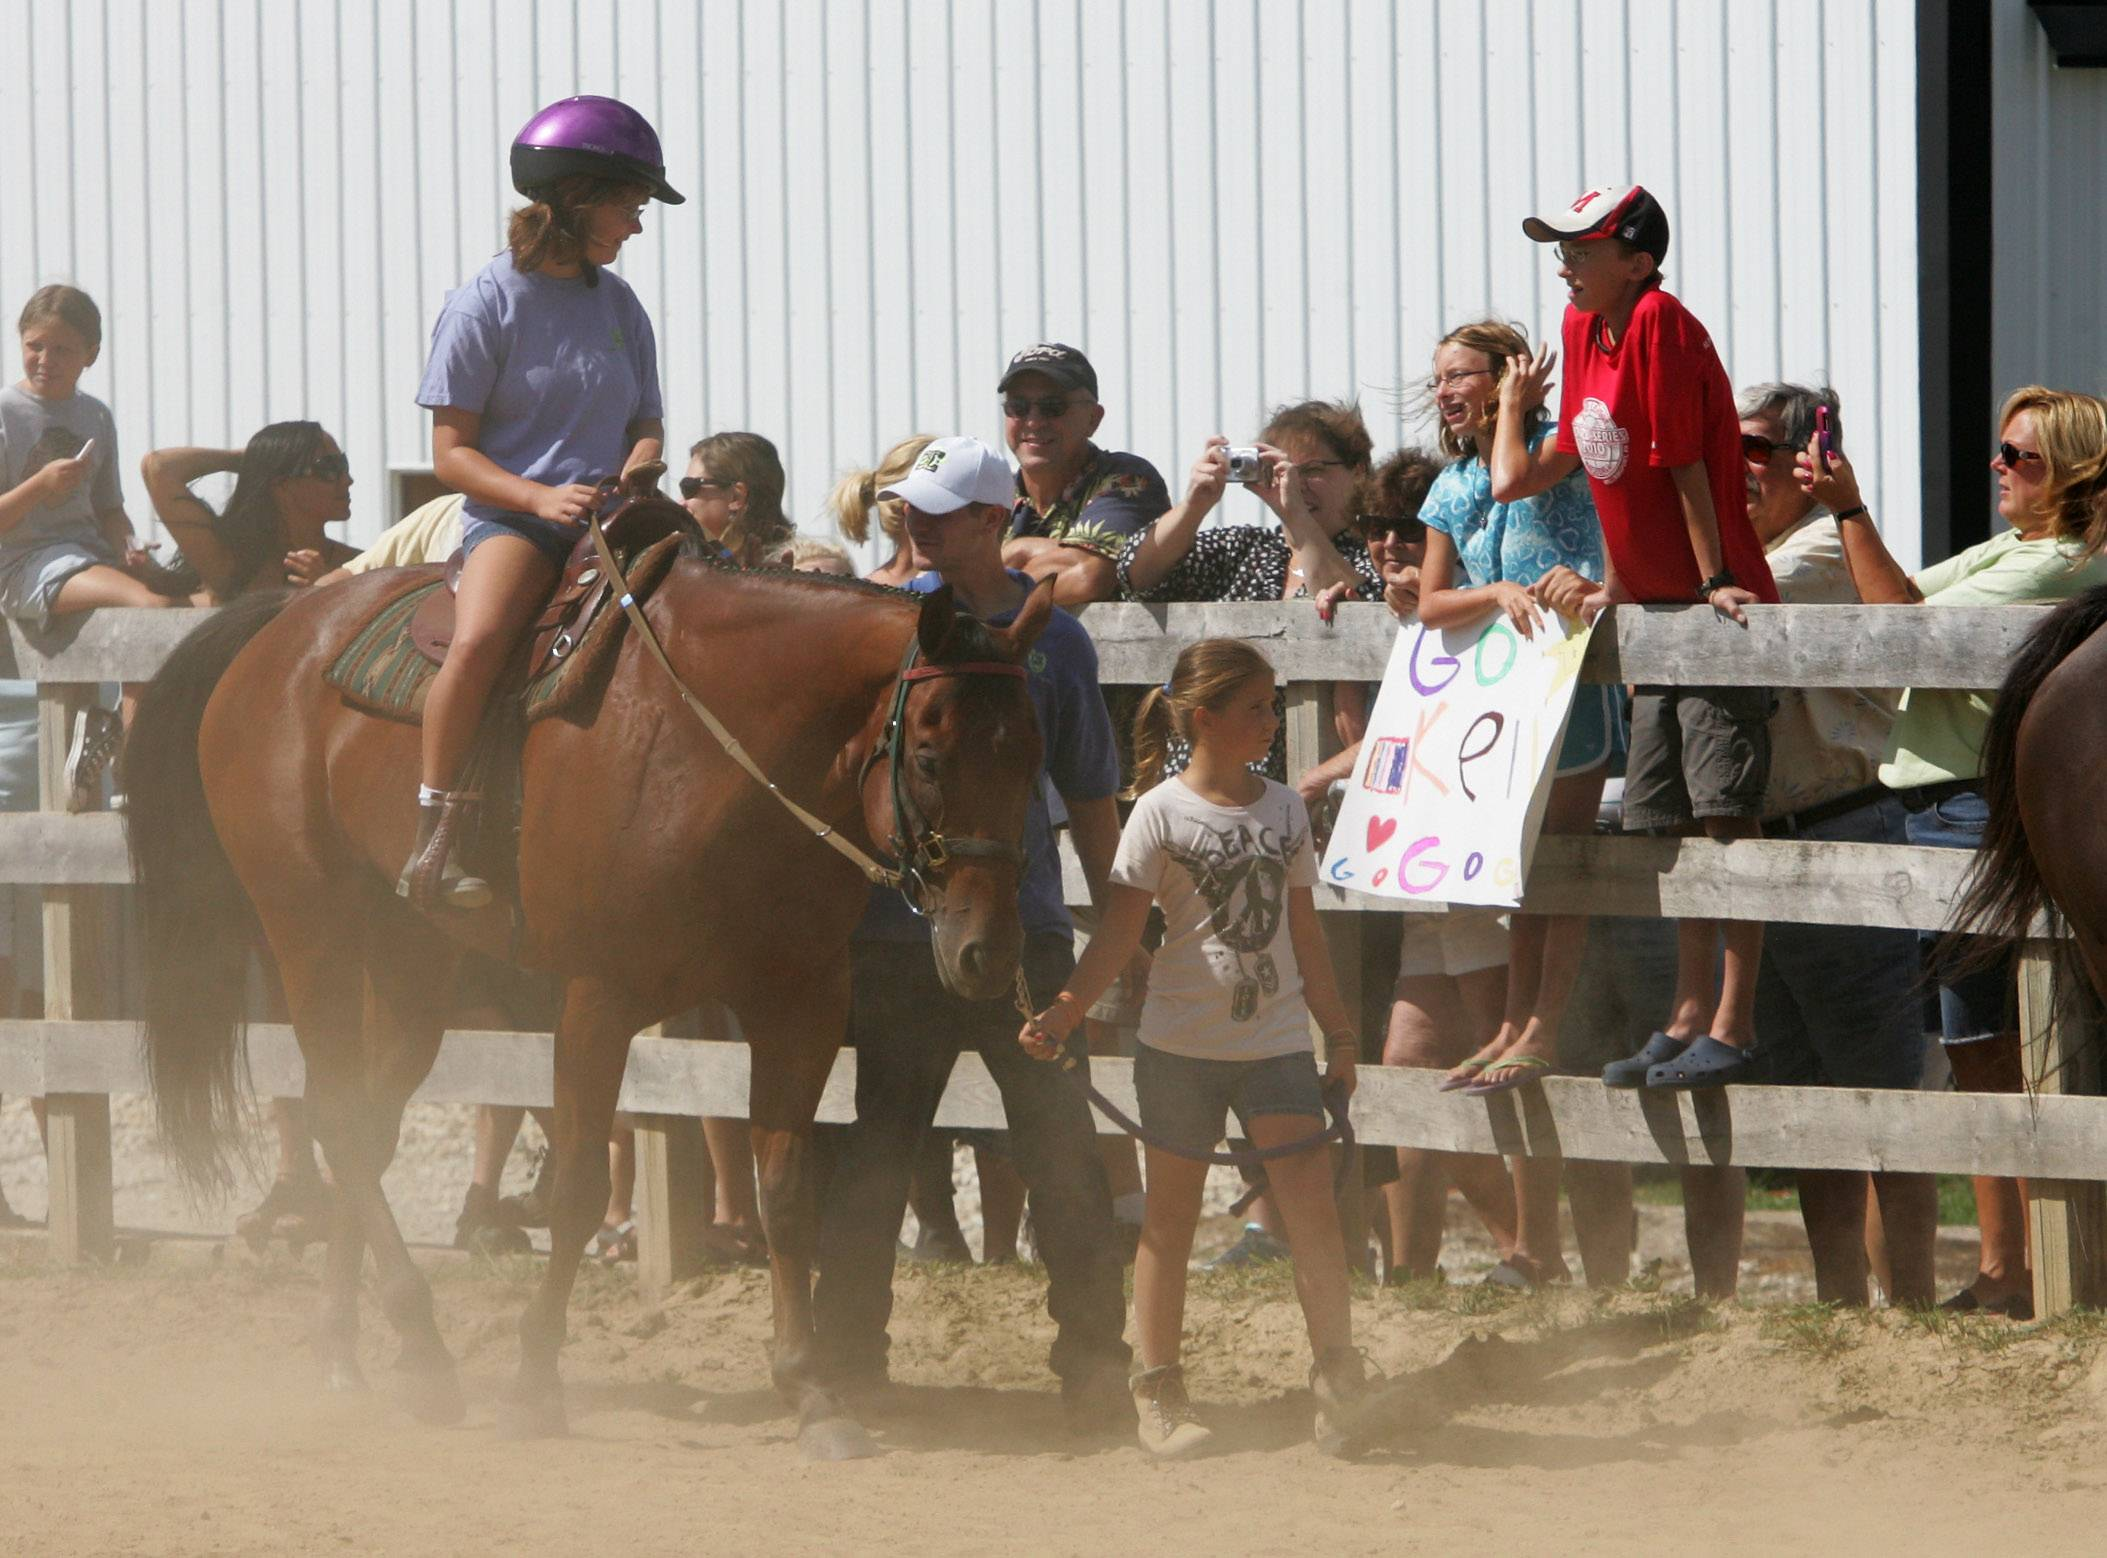 Cheered on by family members, Kelly Corbin, 12, of Hawthorn Woods, rides Duncan during Partners for Progress's Family Summerfest and Participant Horse Show in Wauconda.